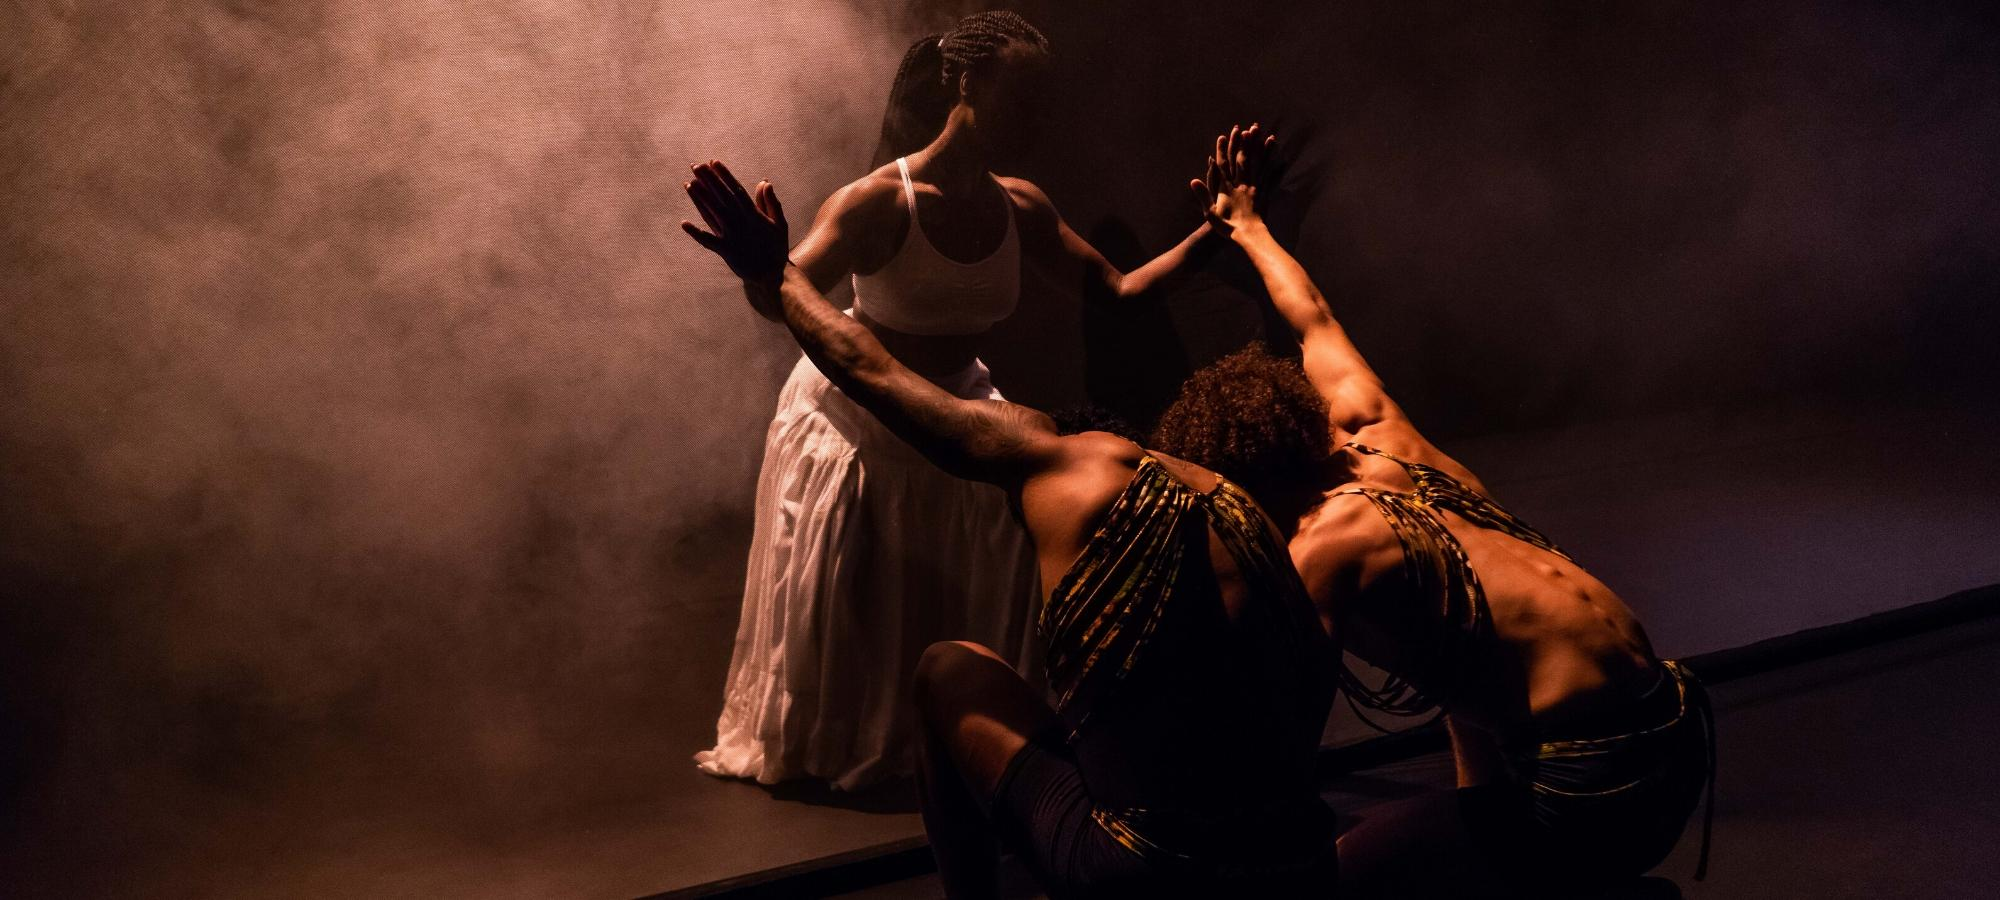 A Black woman in a white dress holds out her hands, palm to palm with two men crouched down before her